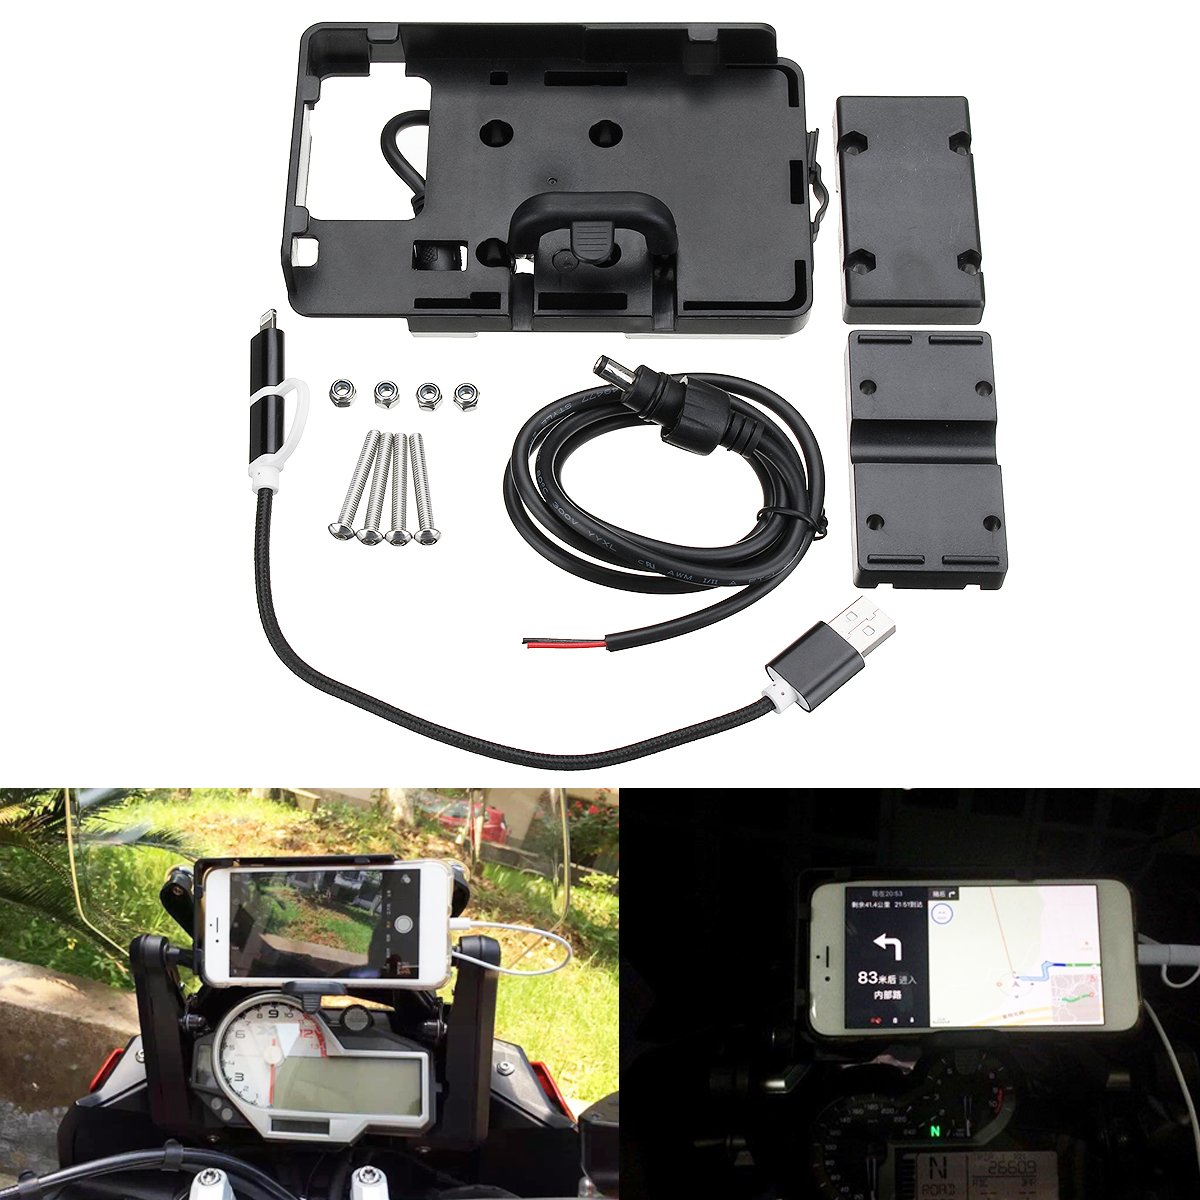 NeDonald GPS USB Navigation Phone Bracket Charger for BMW S1000R S1000XR R1200GS R1200R